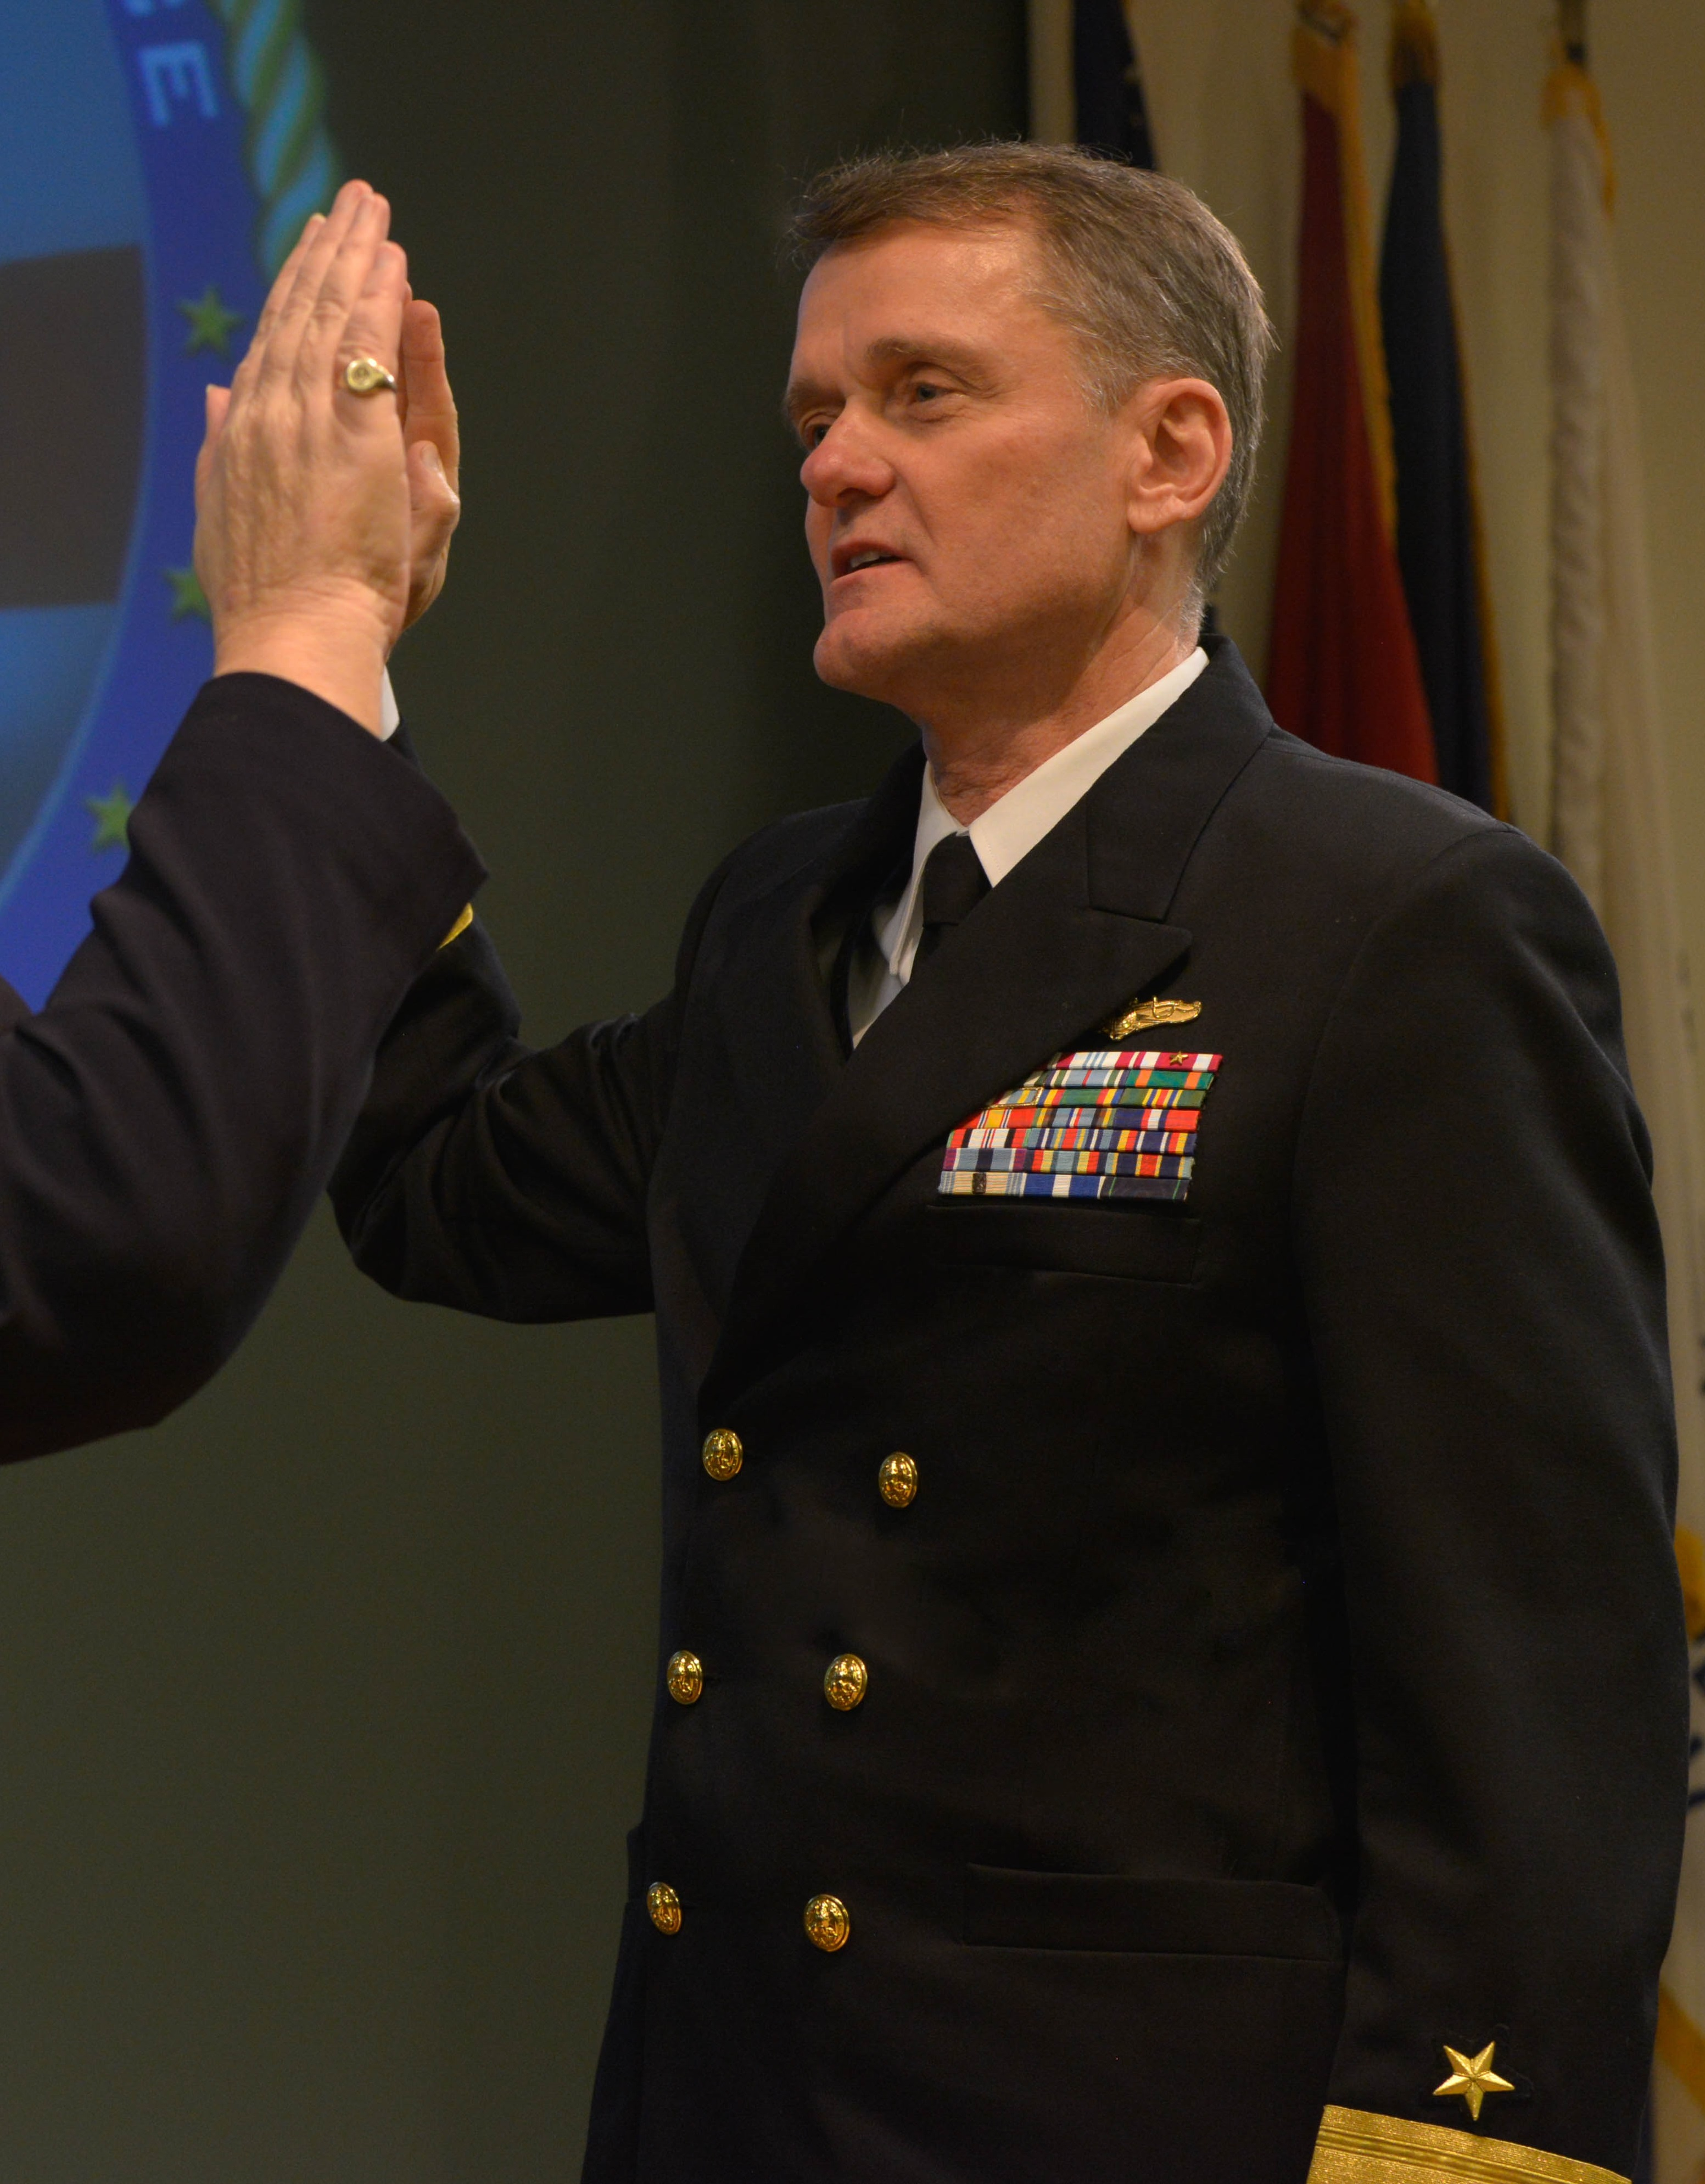 RDML Gene Price assumes directorship of the National Maritime Intelligence-Integration Office (NMIO) and the Office of Naval Intelligence.